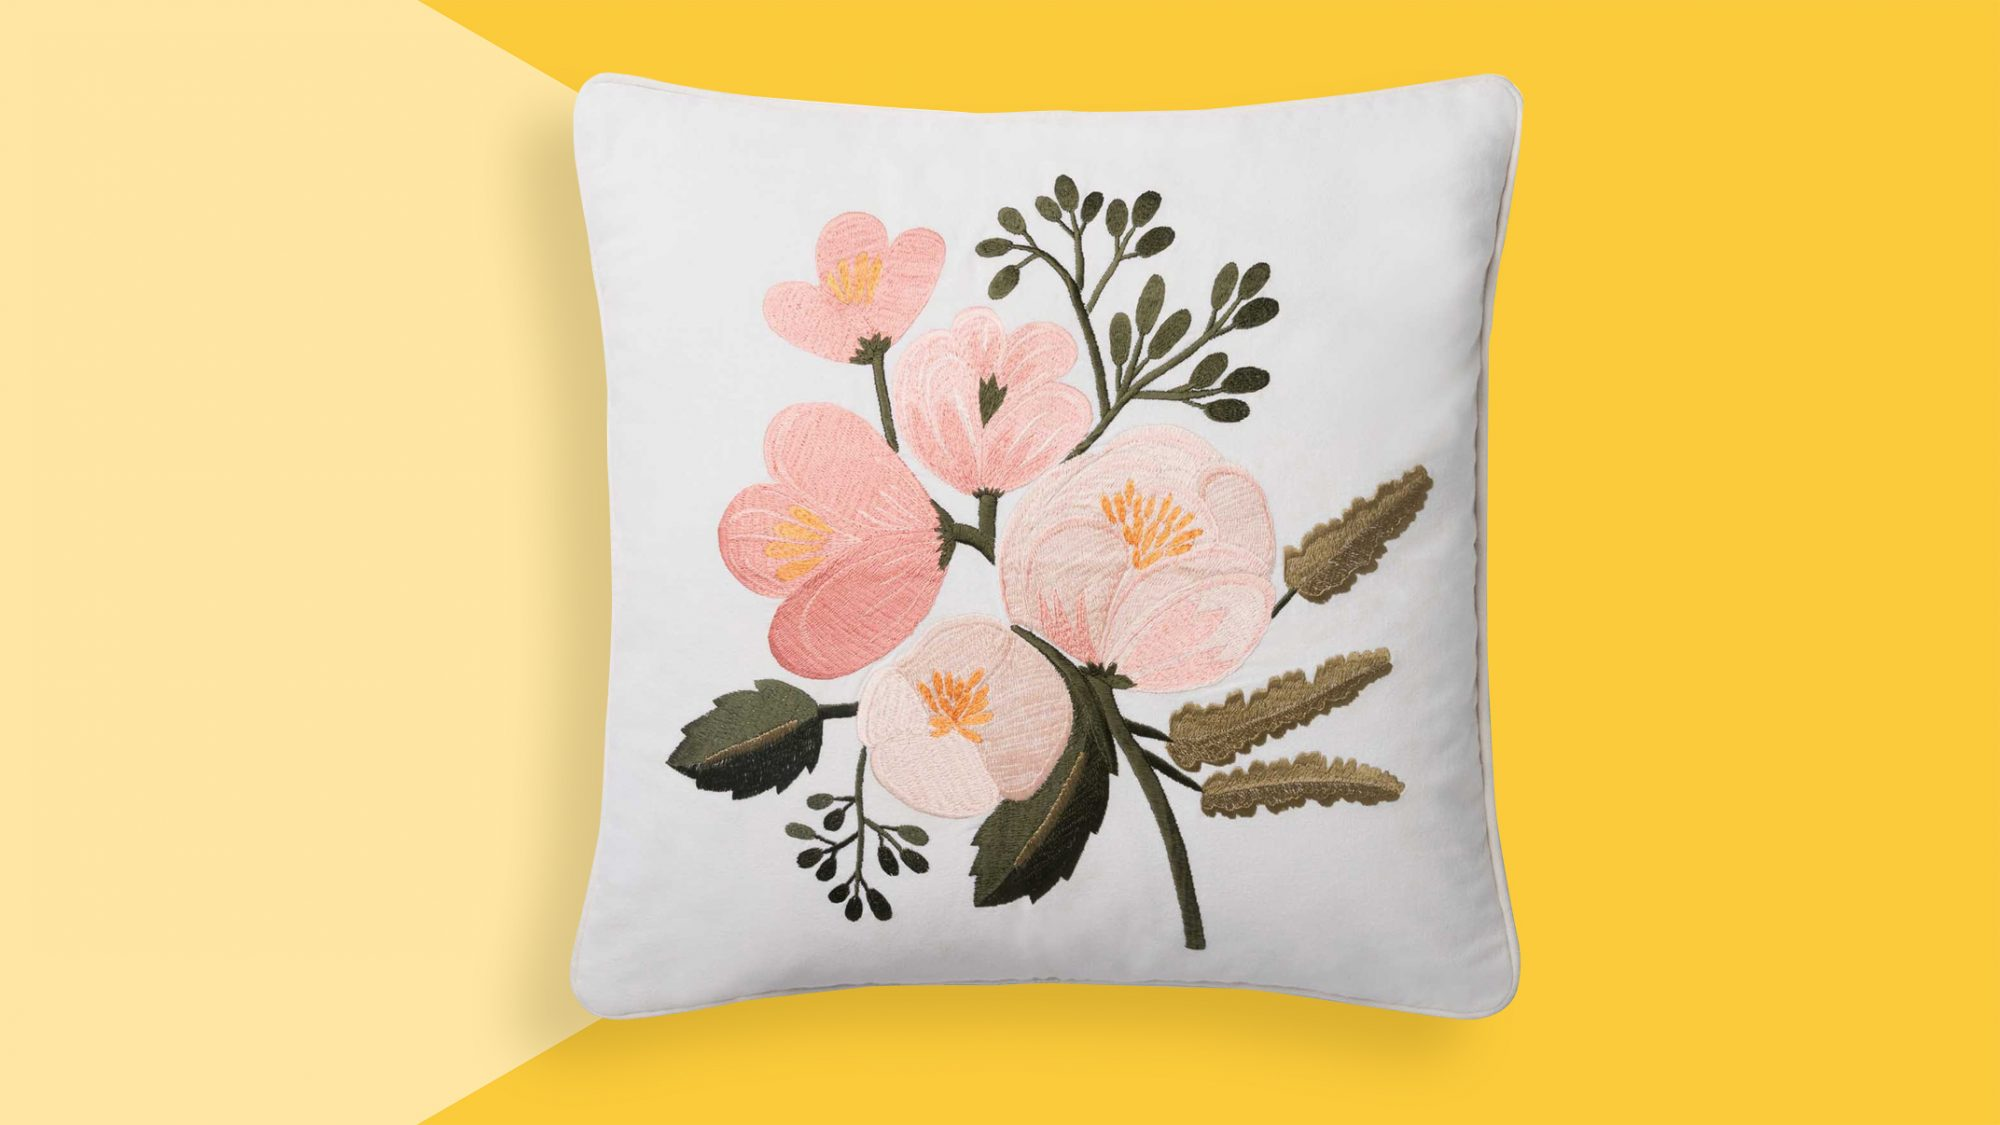 Valentine's Day gifts for her, wife, girlfriend - Rifle Paper Co. pillow on yellow background tout